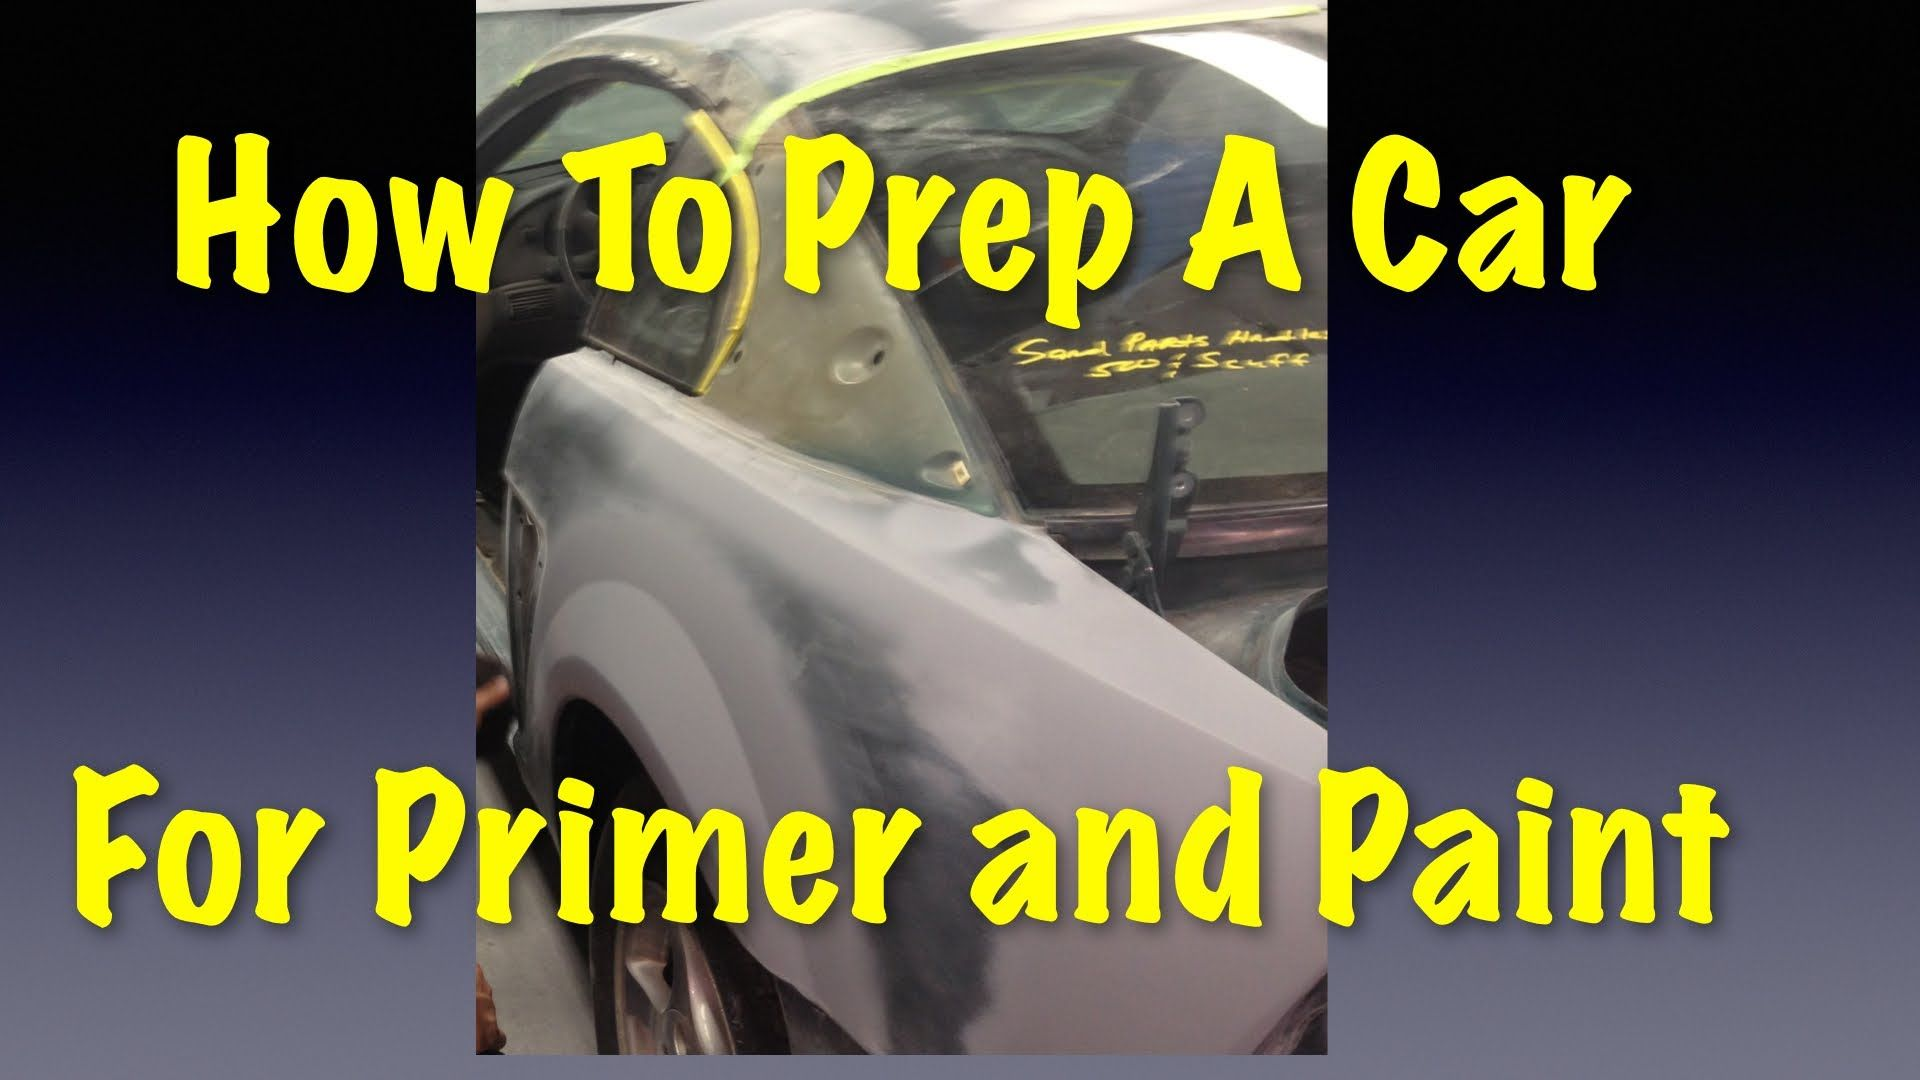 How To Prep A Car For Primer and Paint Eastwood Video